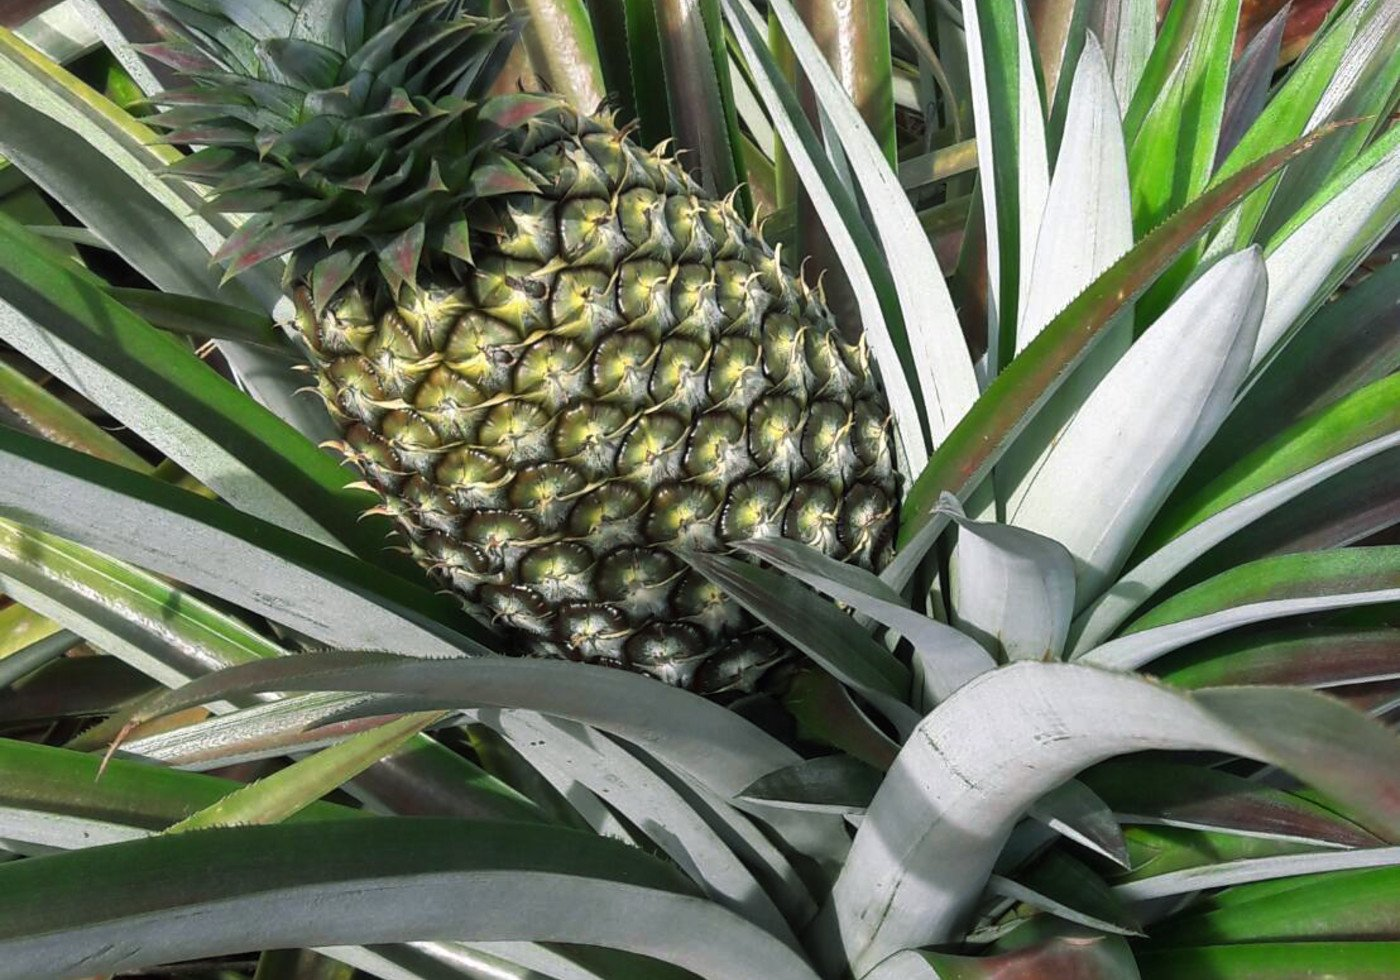 A pineapple in a plant.